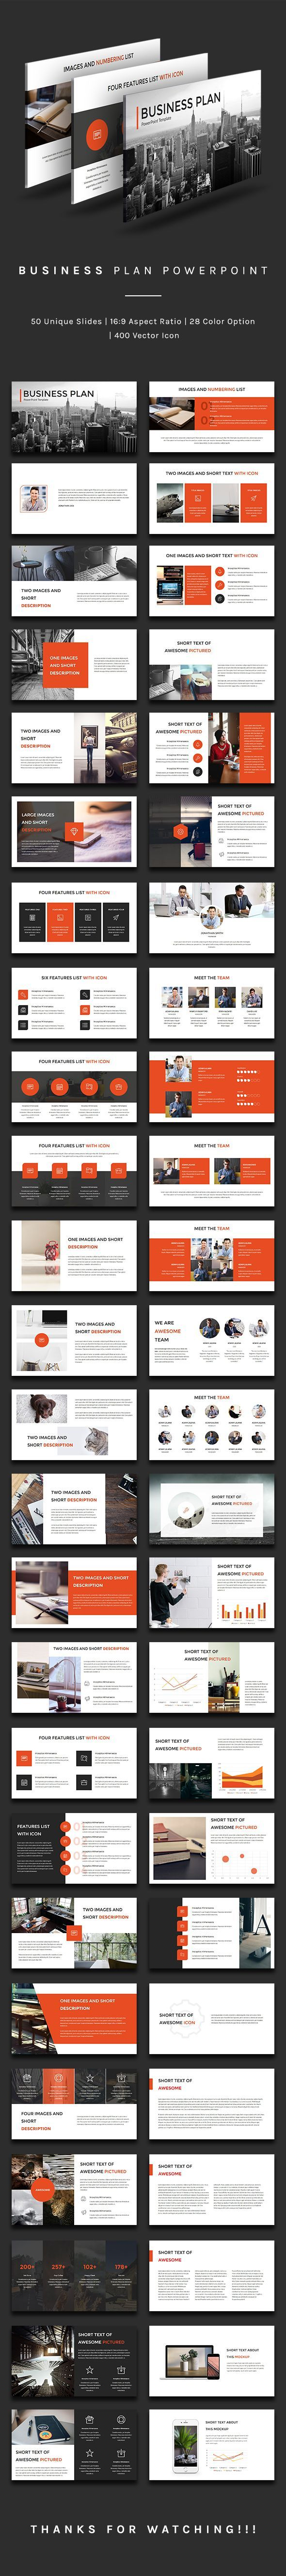 商业计划Powerpoint  -  Powerpoint PPT #marketing presentation #clean presentation•下载➝https://graphicriver.net/item/business-plan-powerpoint/19193700?ref=pxcr